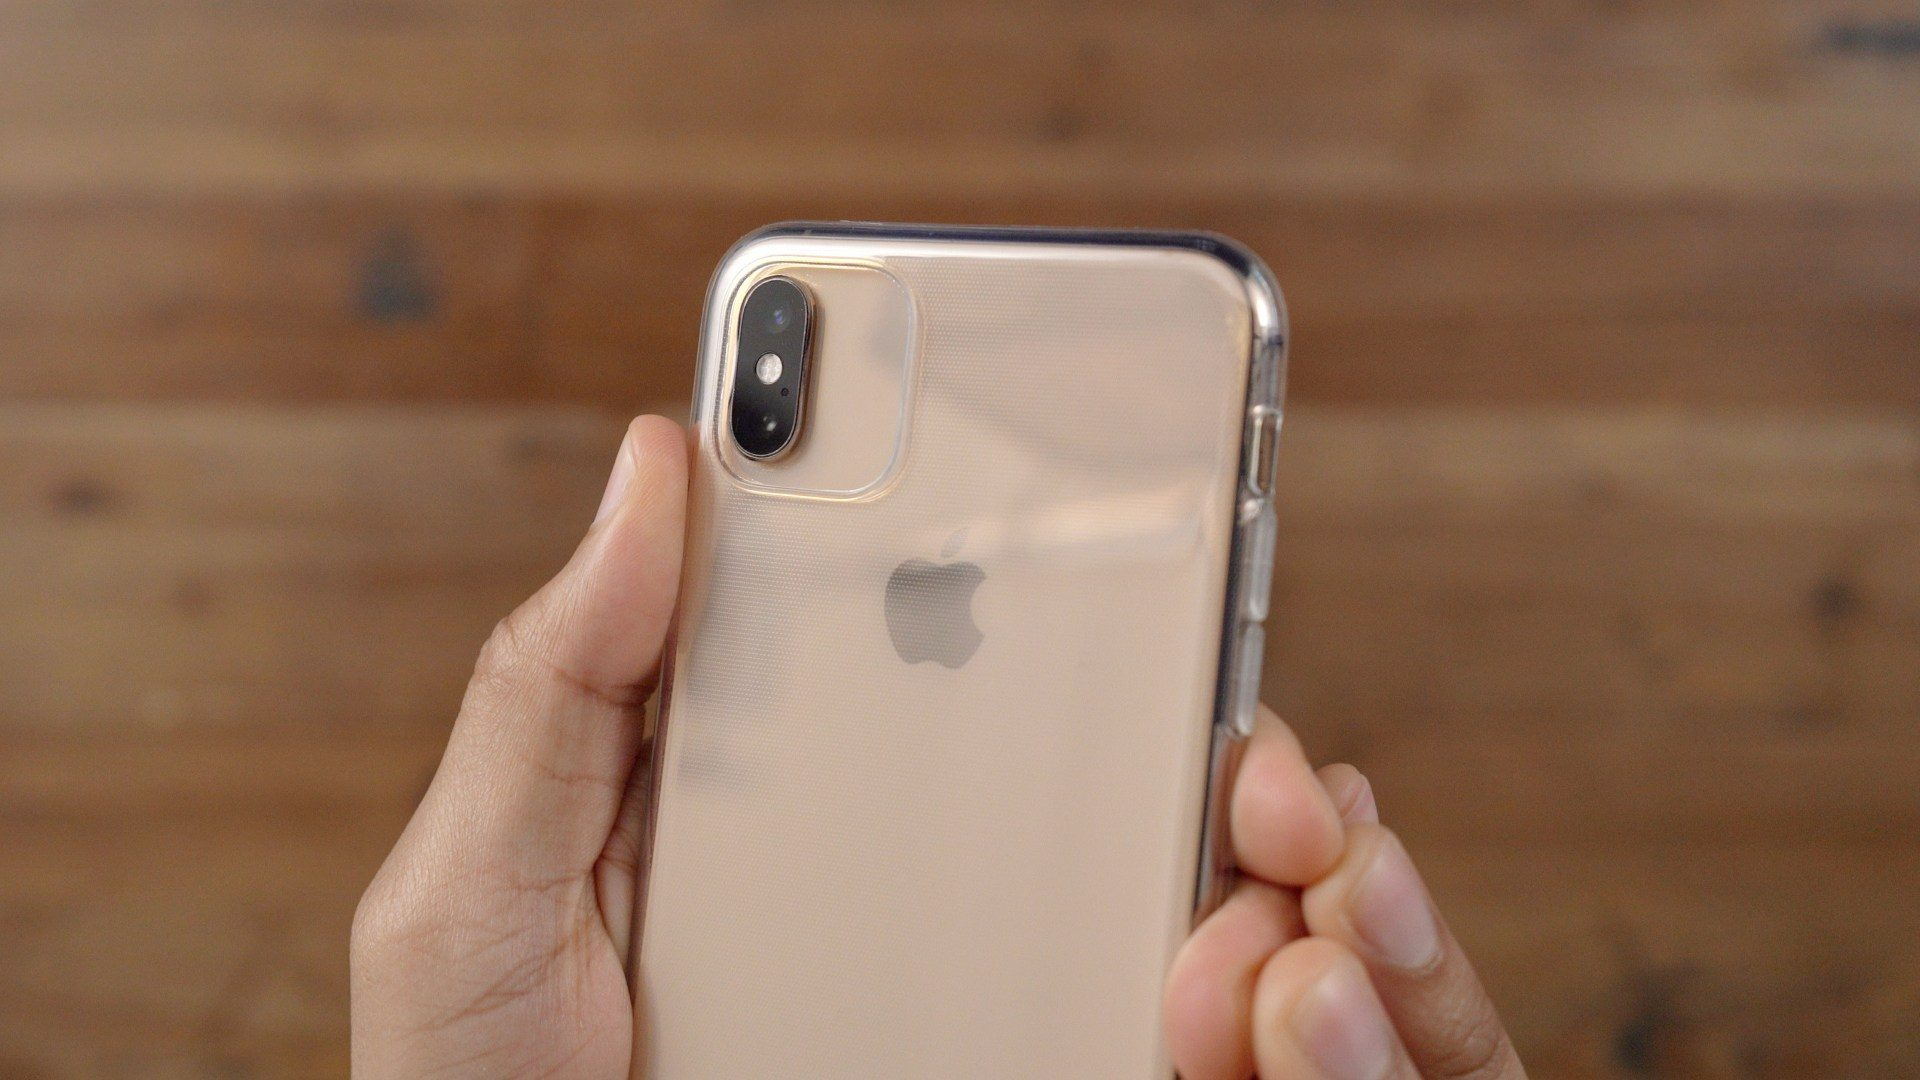 iphone 11 - photo #31